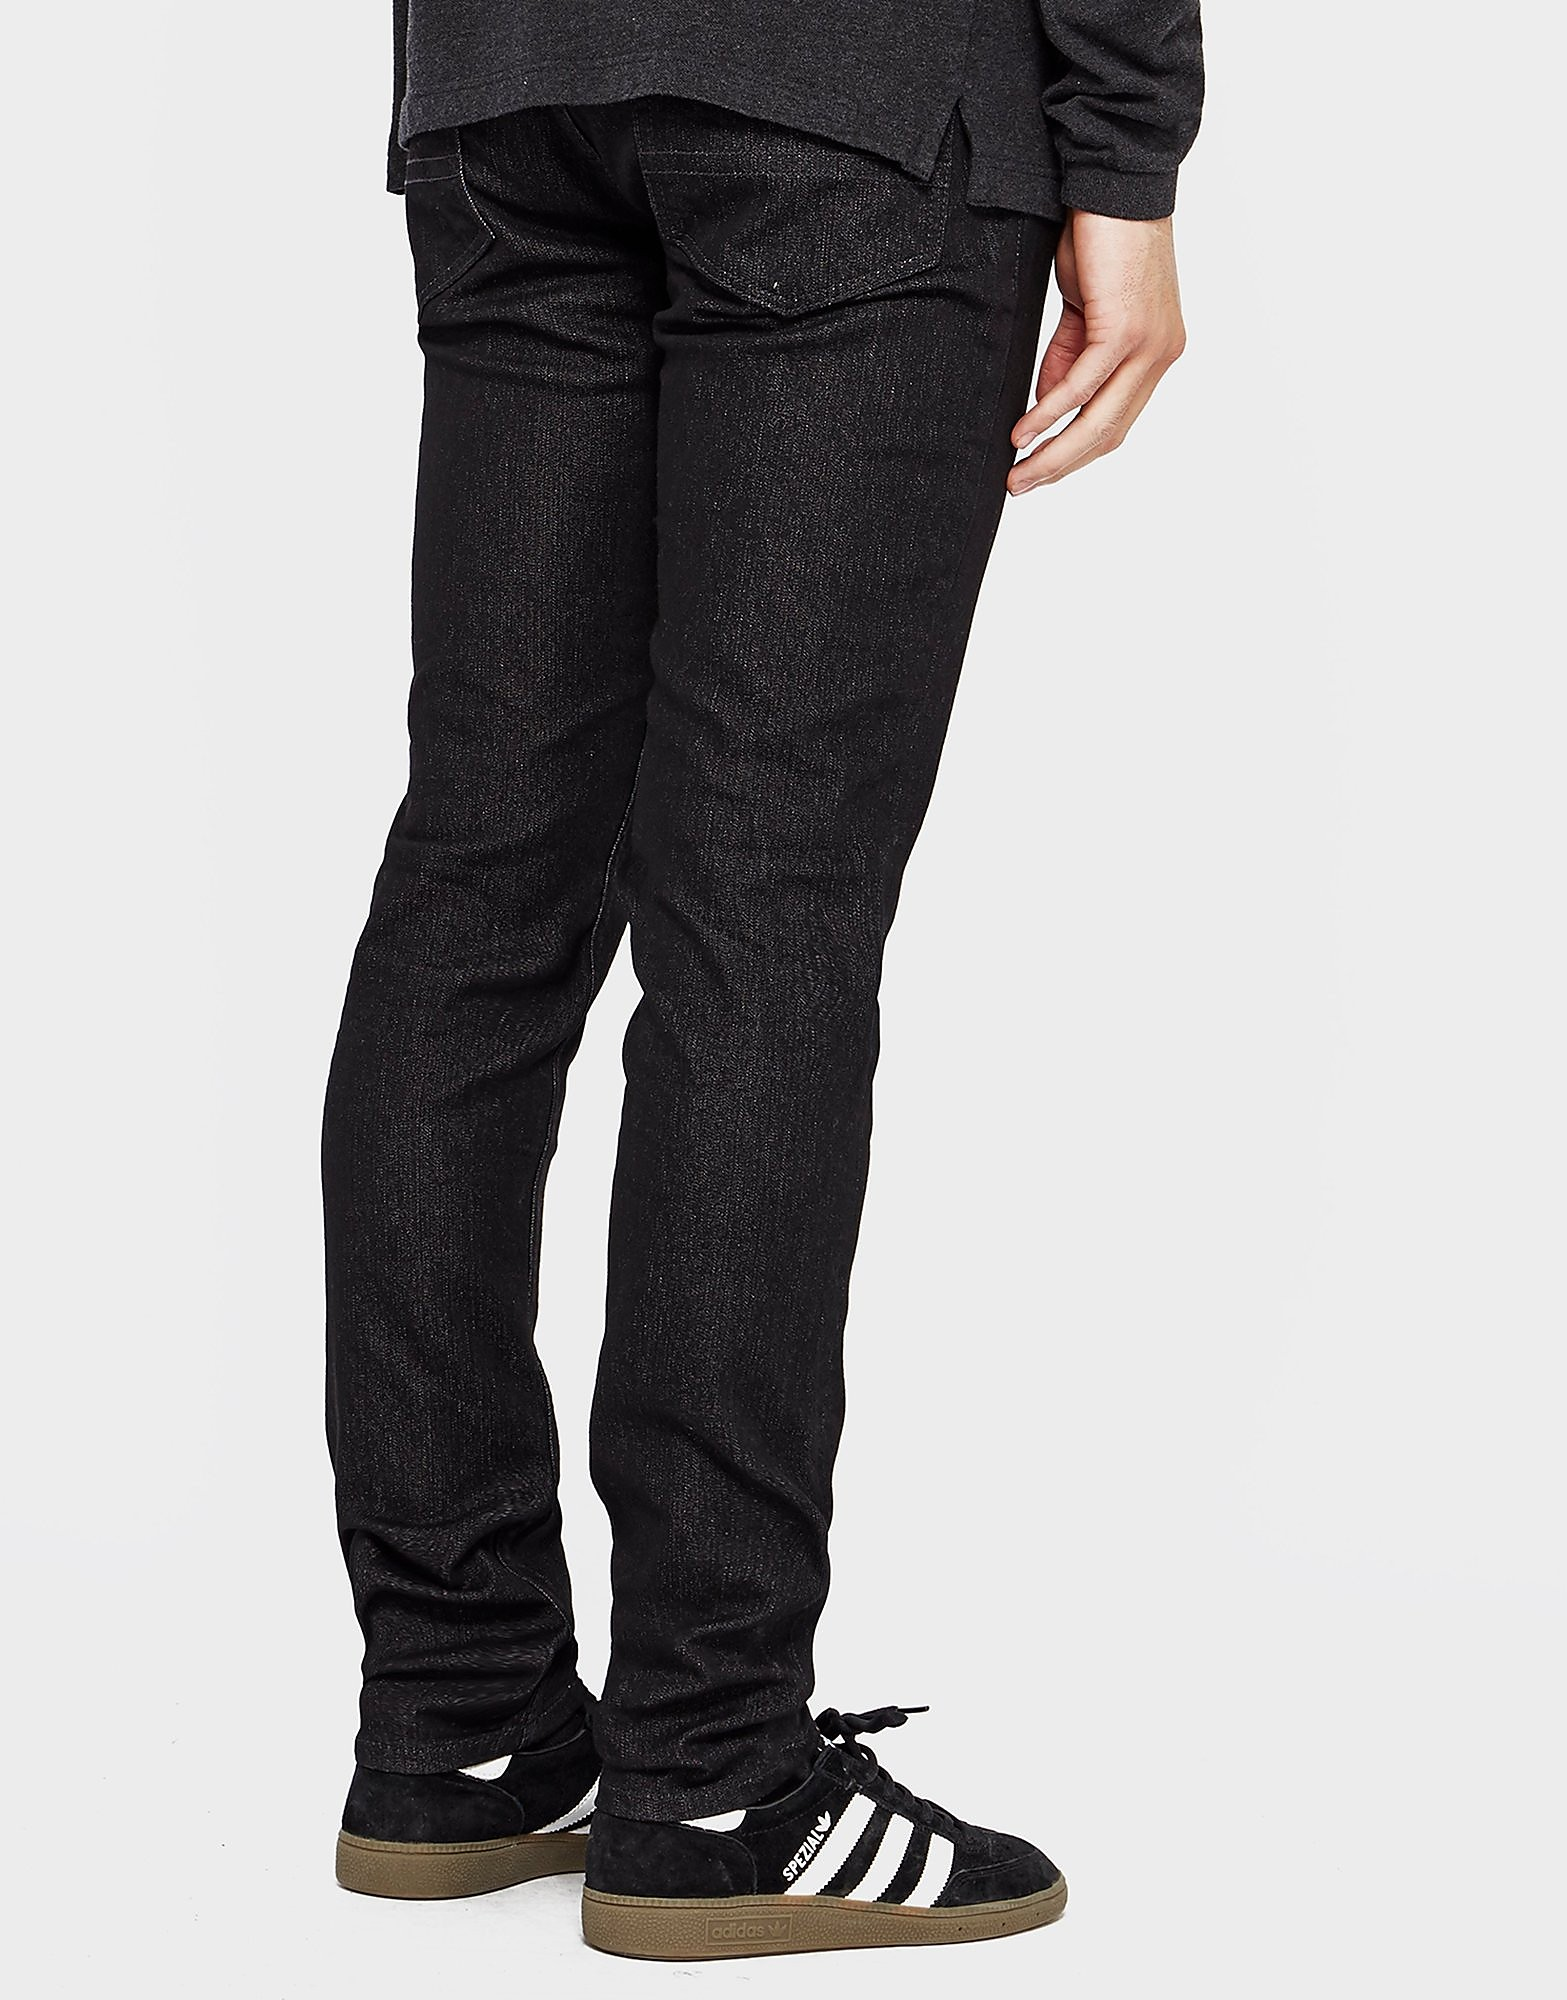 Henri Lloyd Dory Slim Fit Jean